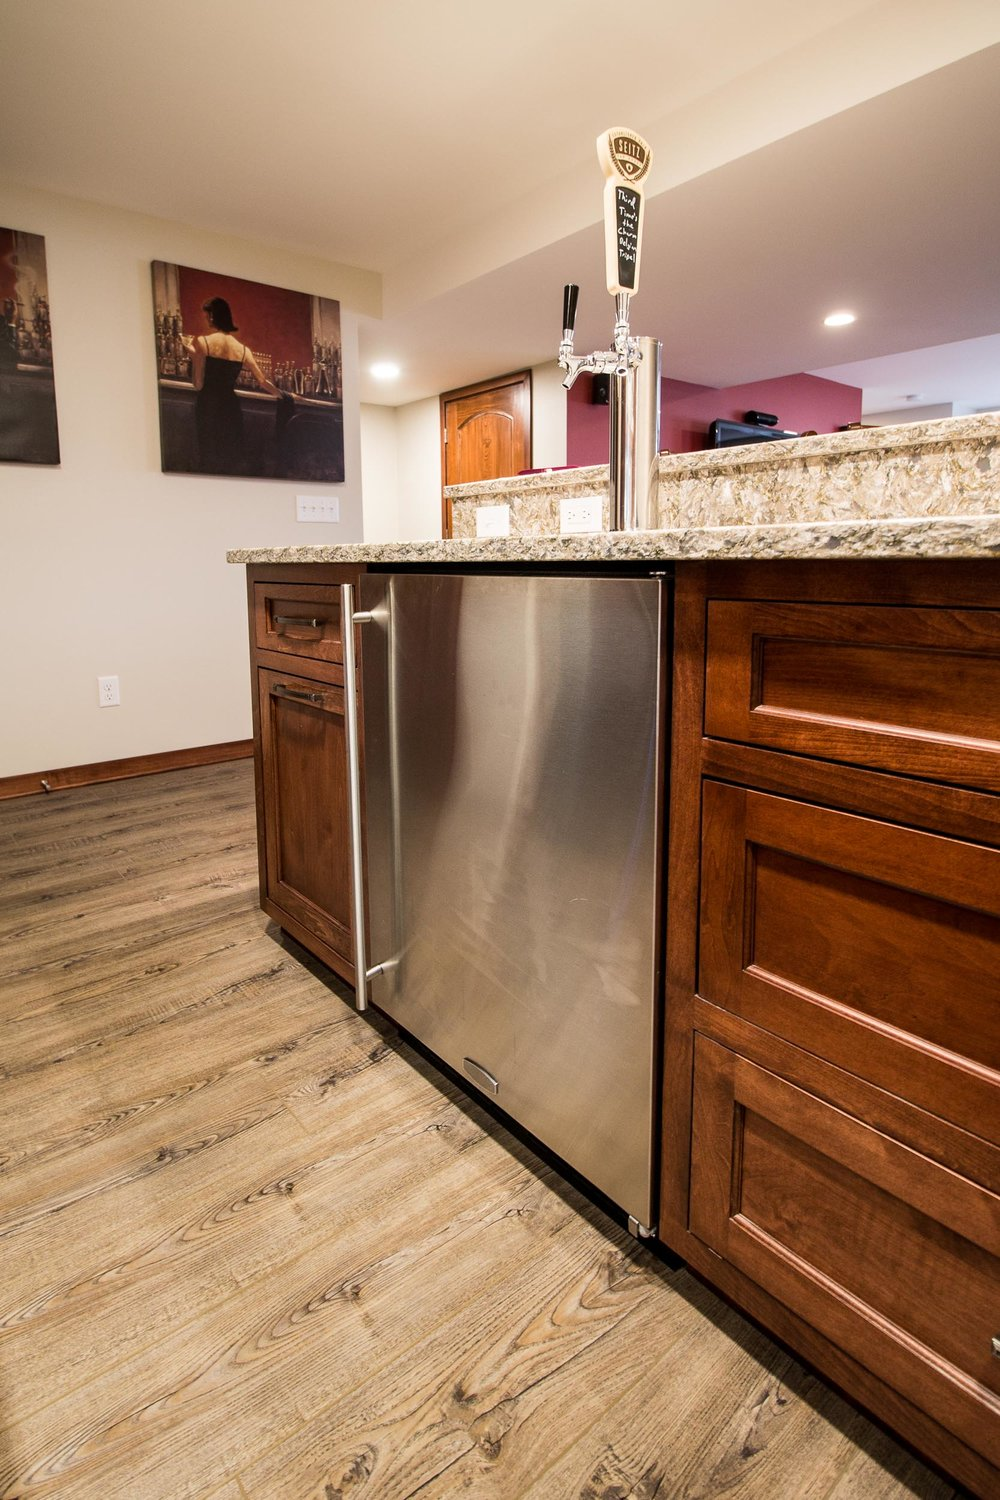 - This bar boasts a two-tap kegerator setup in its under counter beverage center.